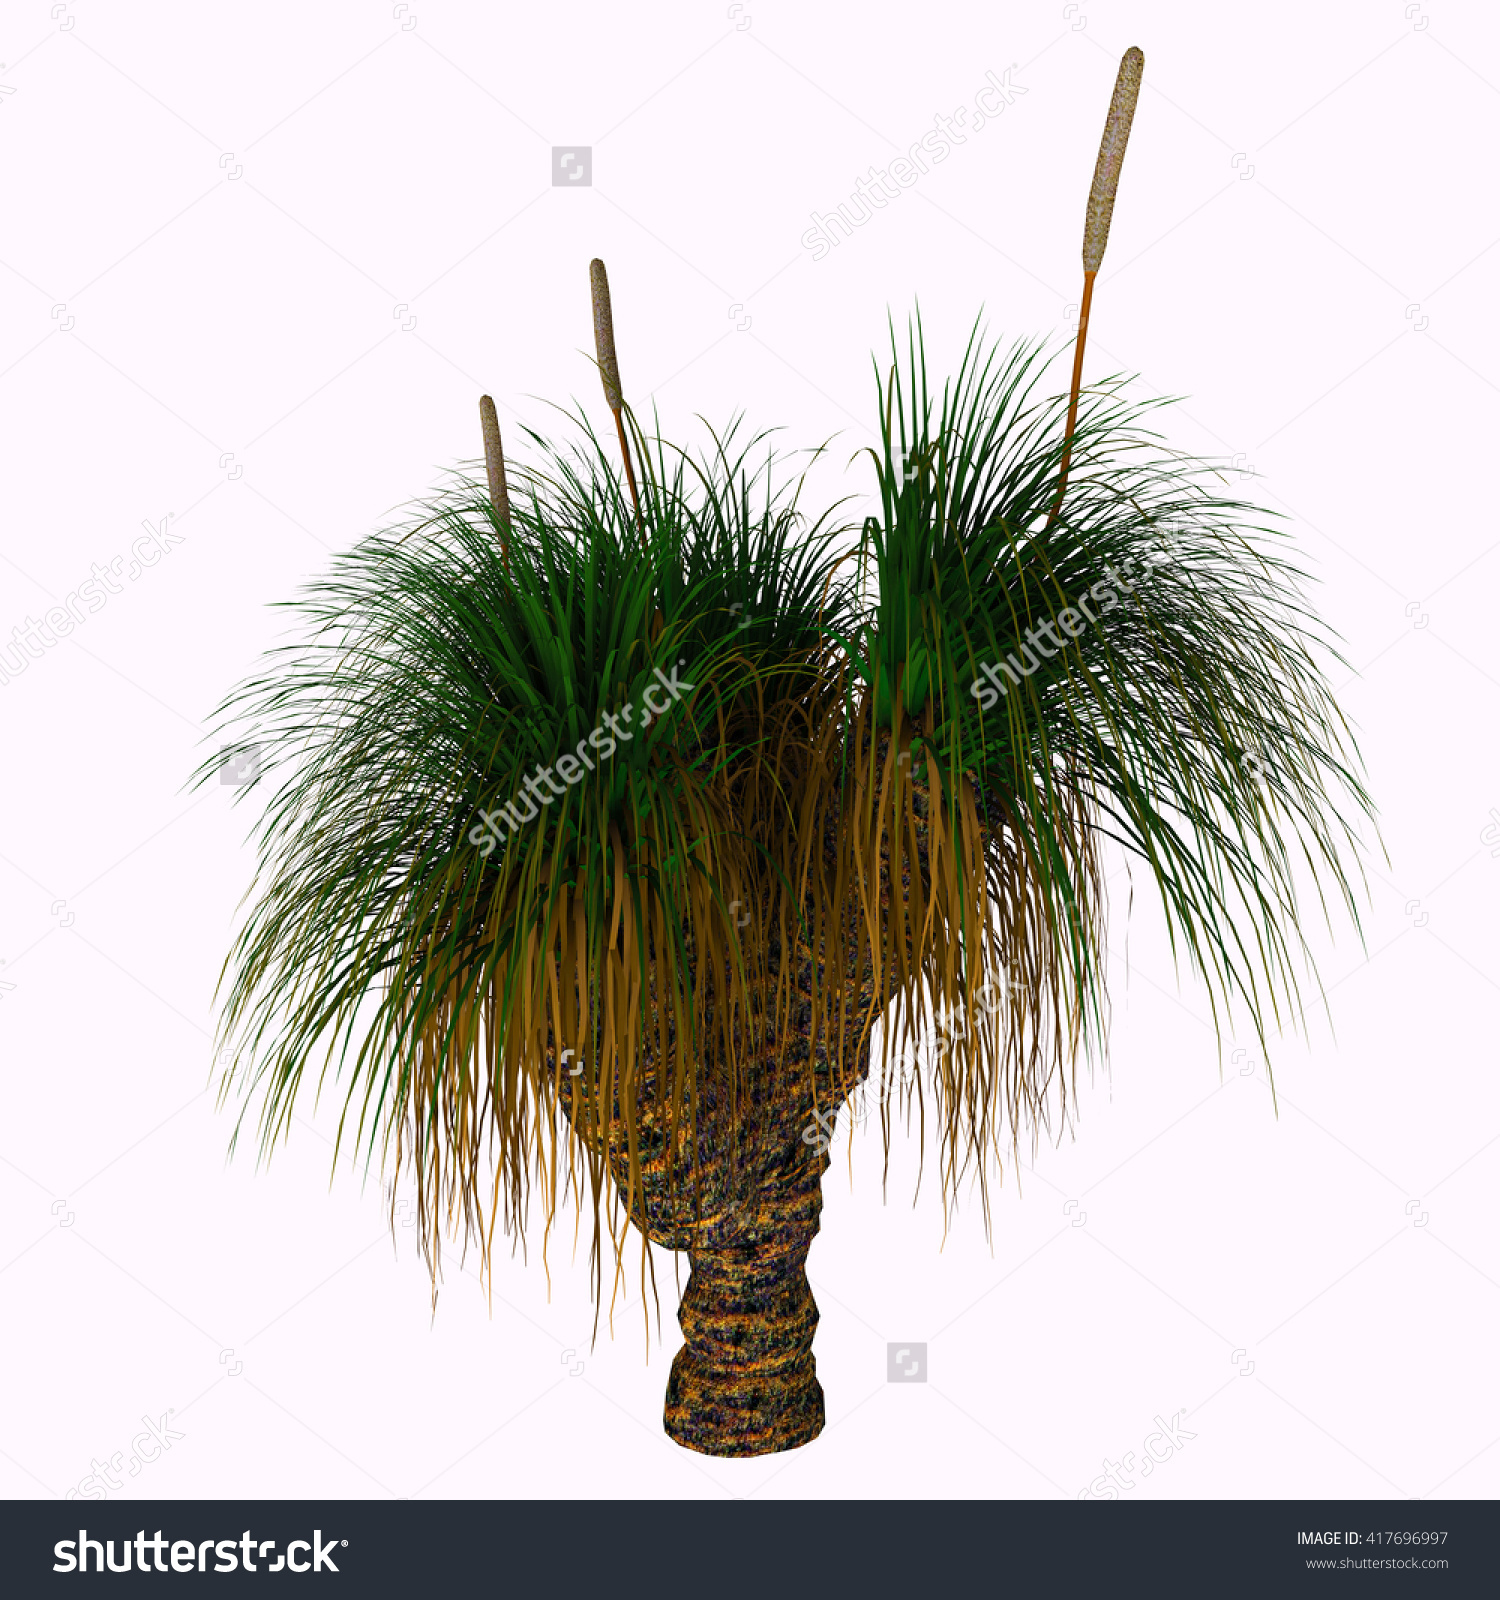 Palm genus clipart #9